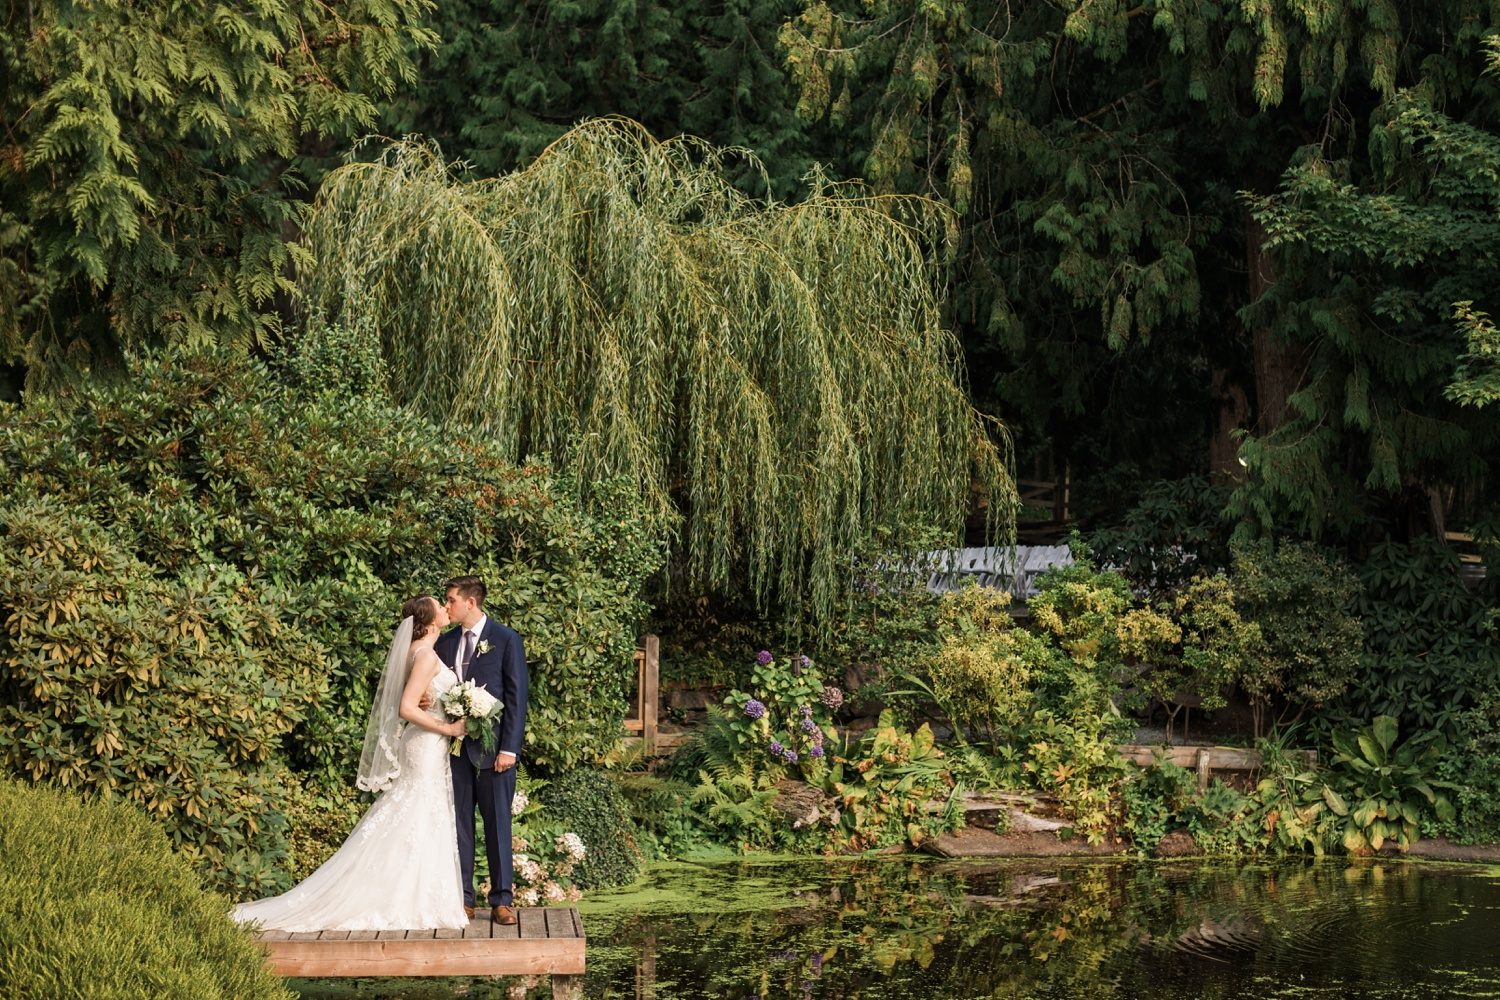 A bride and groom kiss in a beautiful garden before their wedding at Chateau Lill in Woodinville, a wedding venue near Seattle, WA. | Joanna Monger Photography | Seattle & Snohomish Photographer